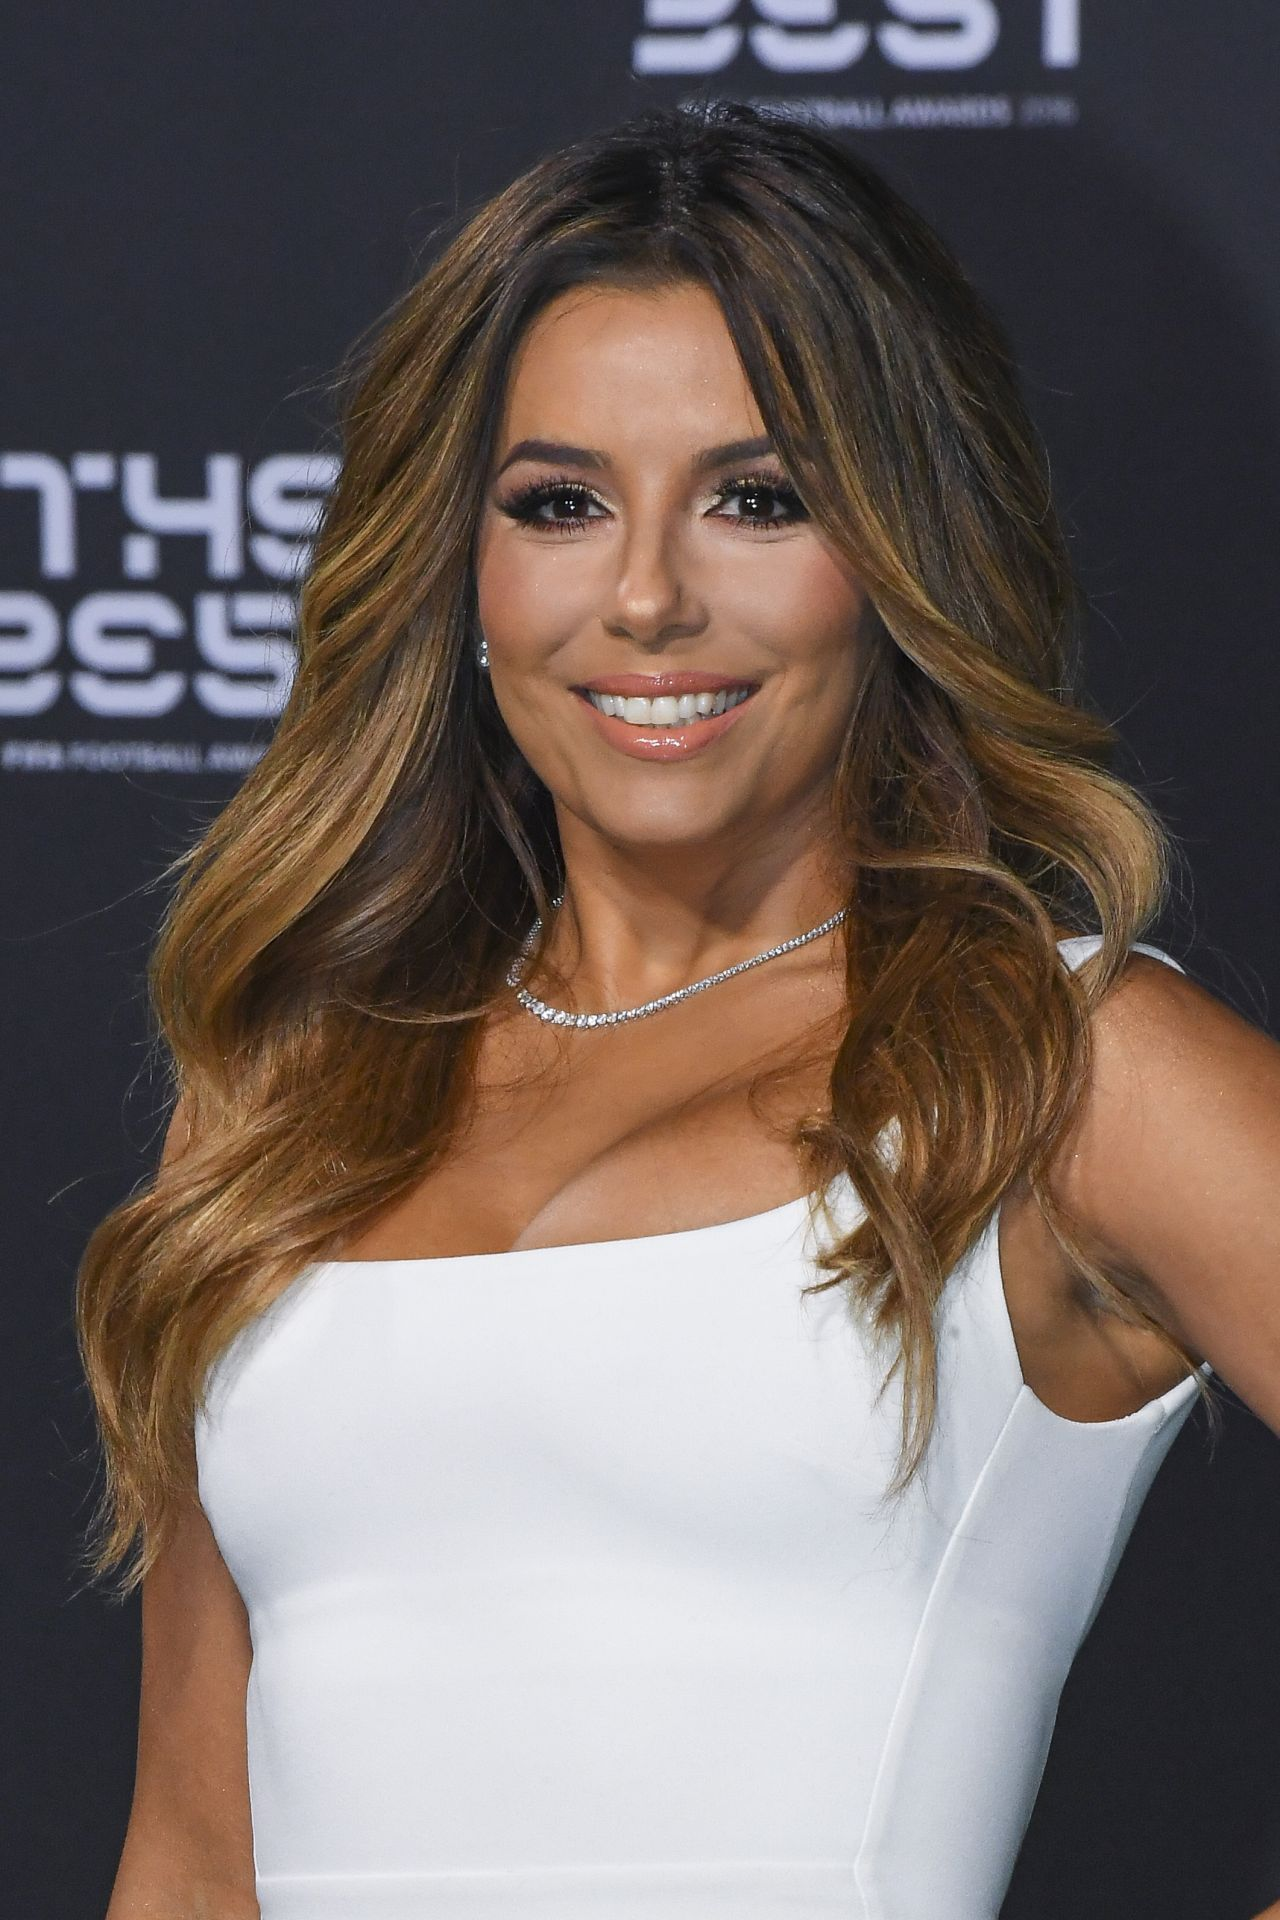 eva longoria fifa football awards 1 9 2017. Black Bedroom Furniture Sets. Home Design Ideas